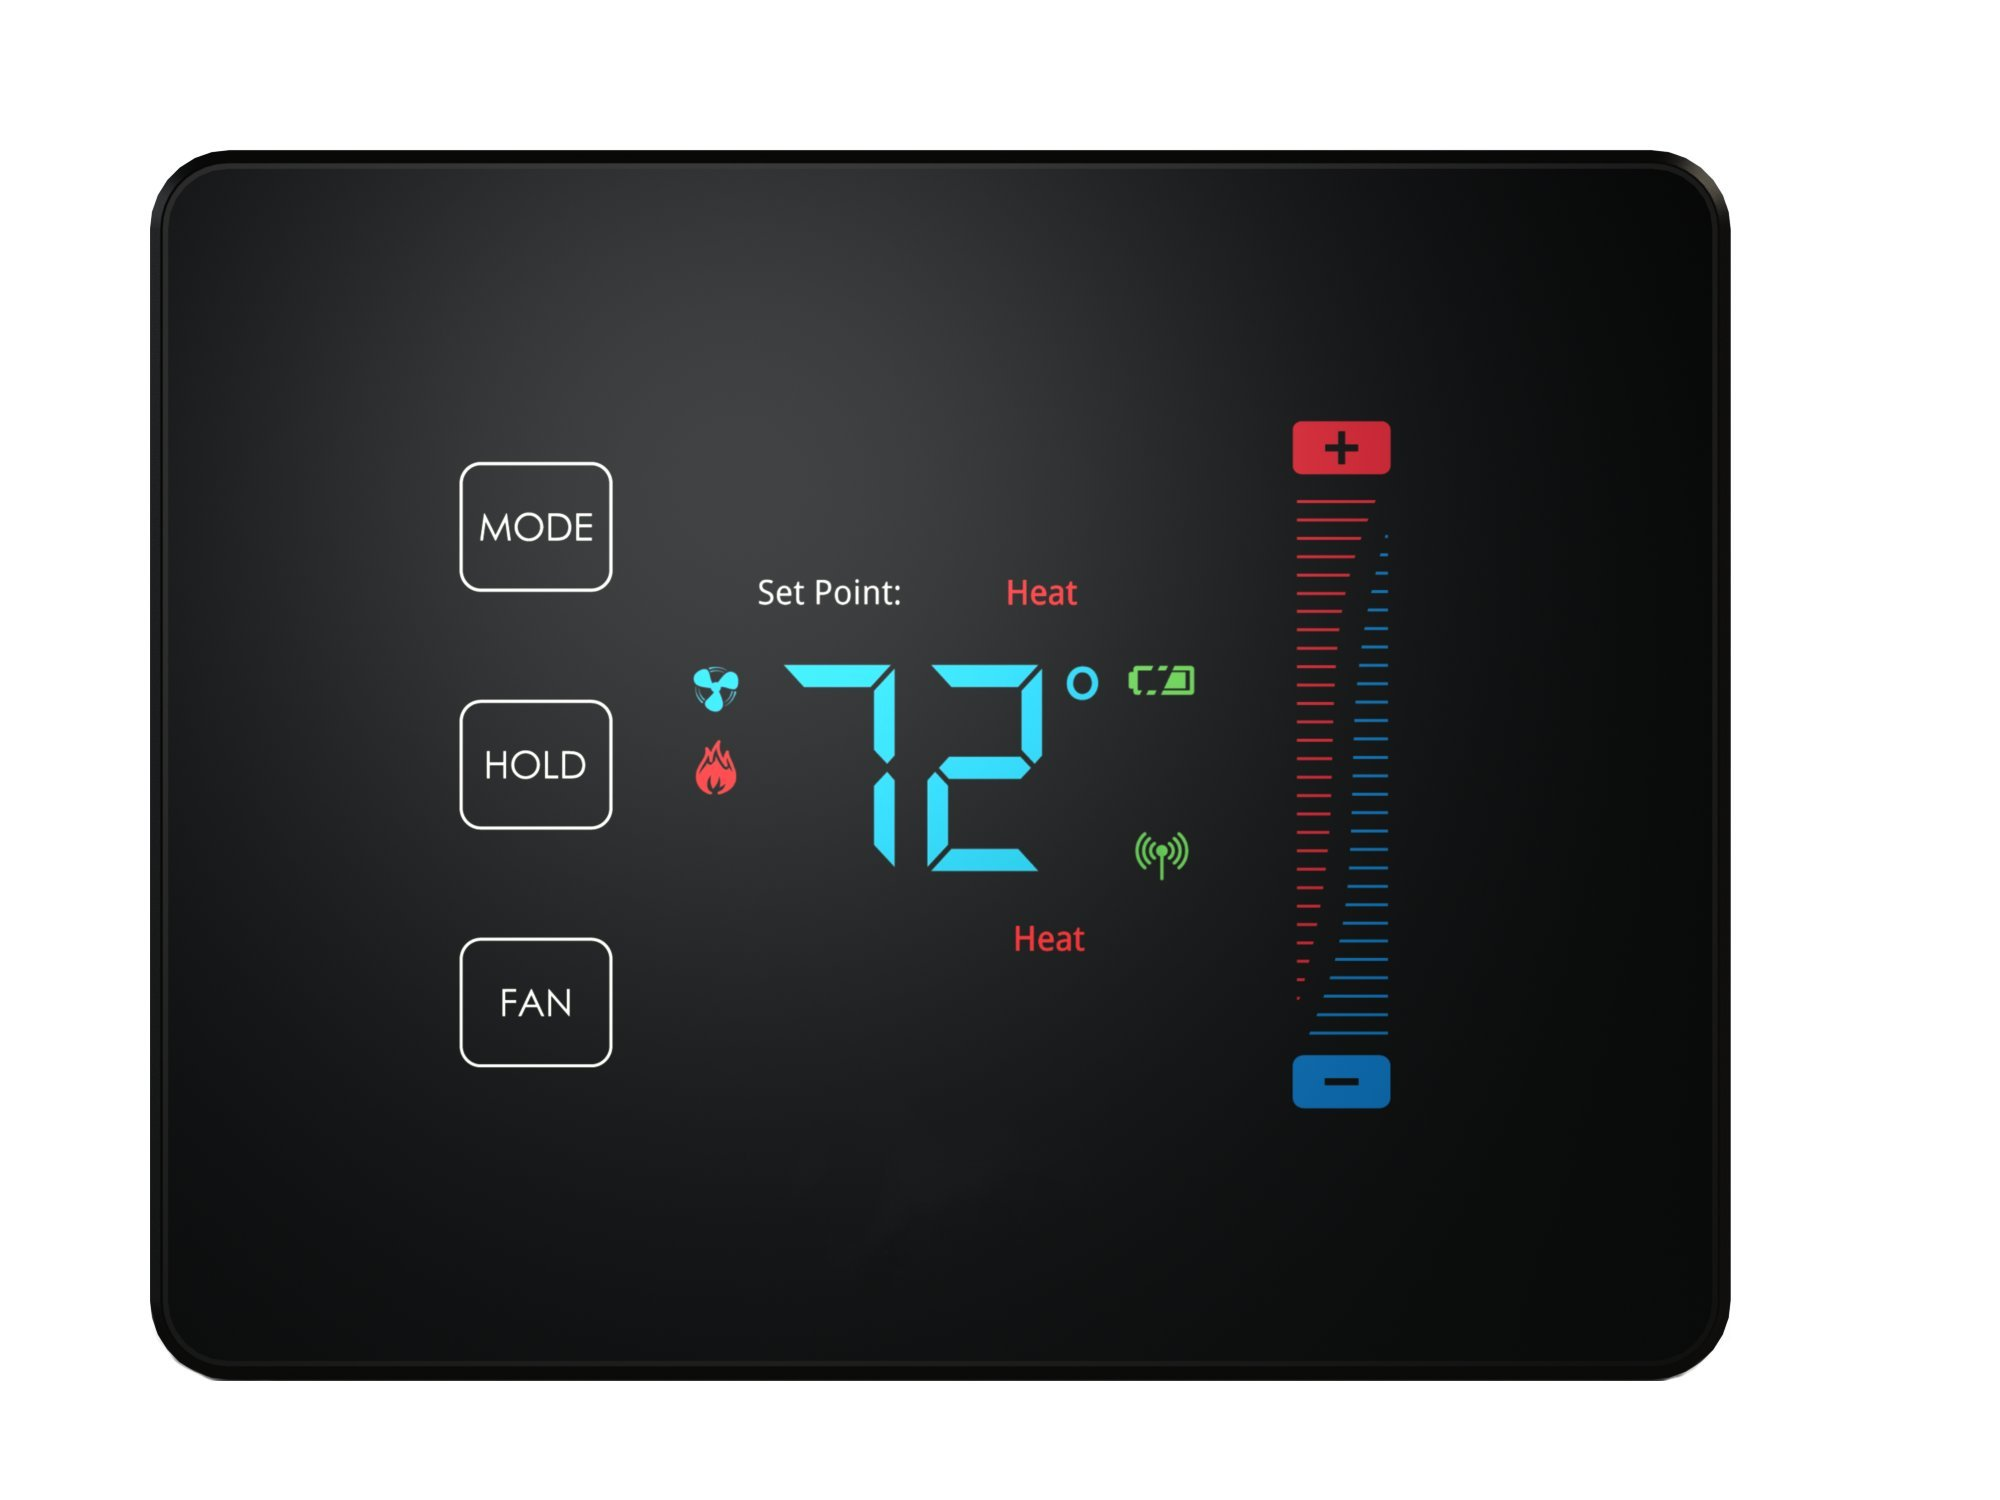 Centralite Pearl Thermostat (Works with SmartThings, Spectrum, Cox, Time Warner Cable, Vera, and ZigBee Platforms), Black